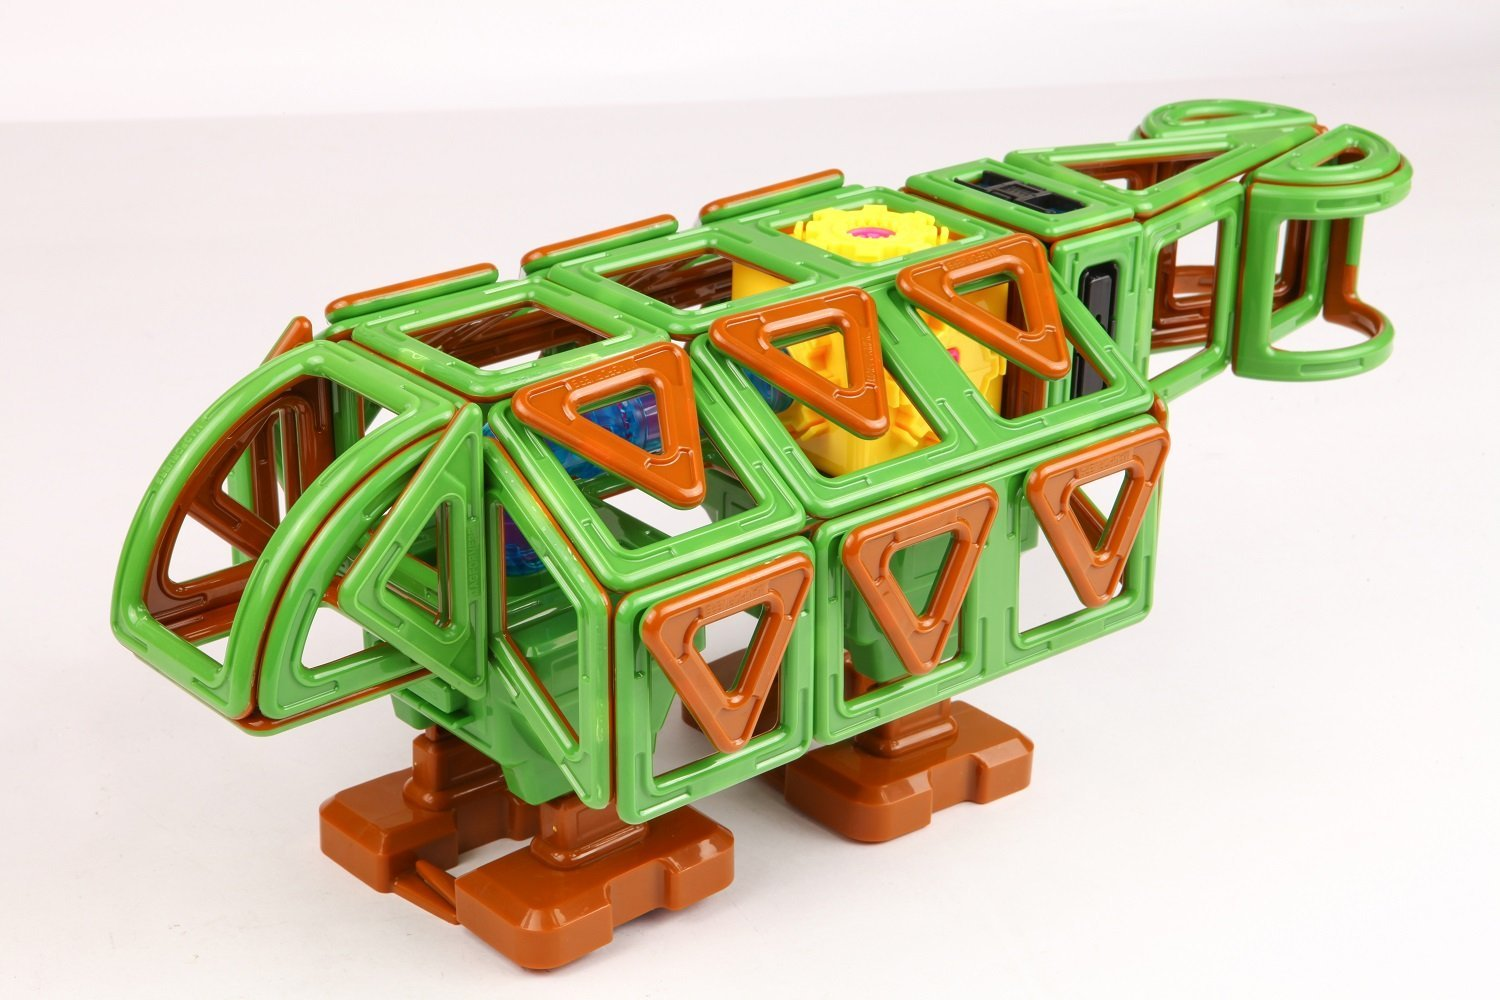 Magformers ''Walking Dinosaur Magnetic Toy (81-Piece) by Magformers (Image #2)